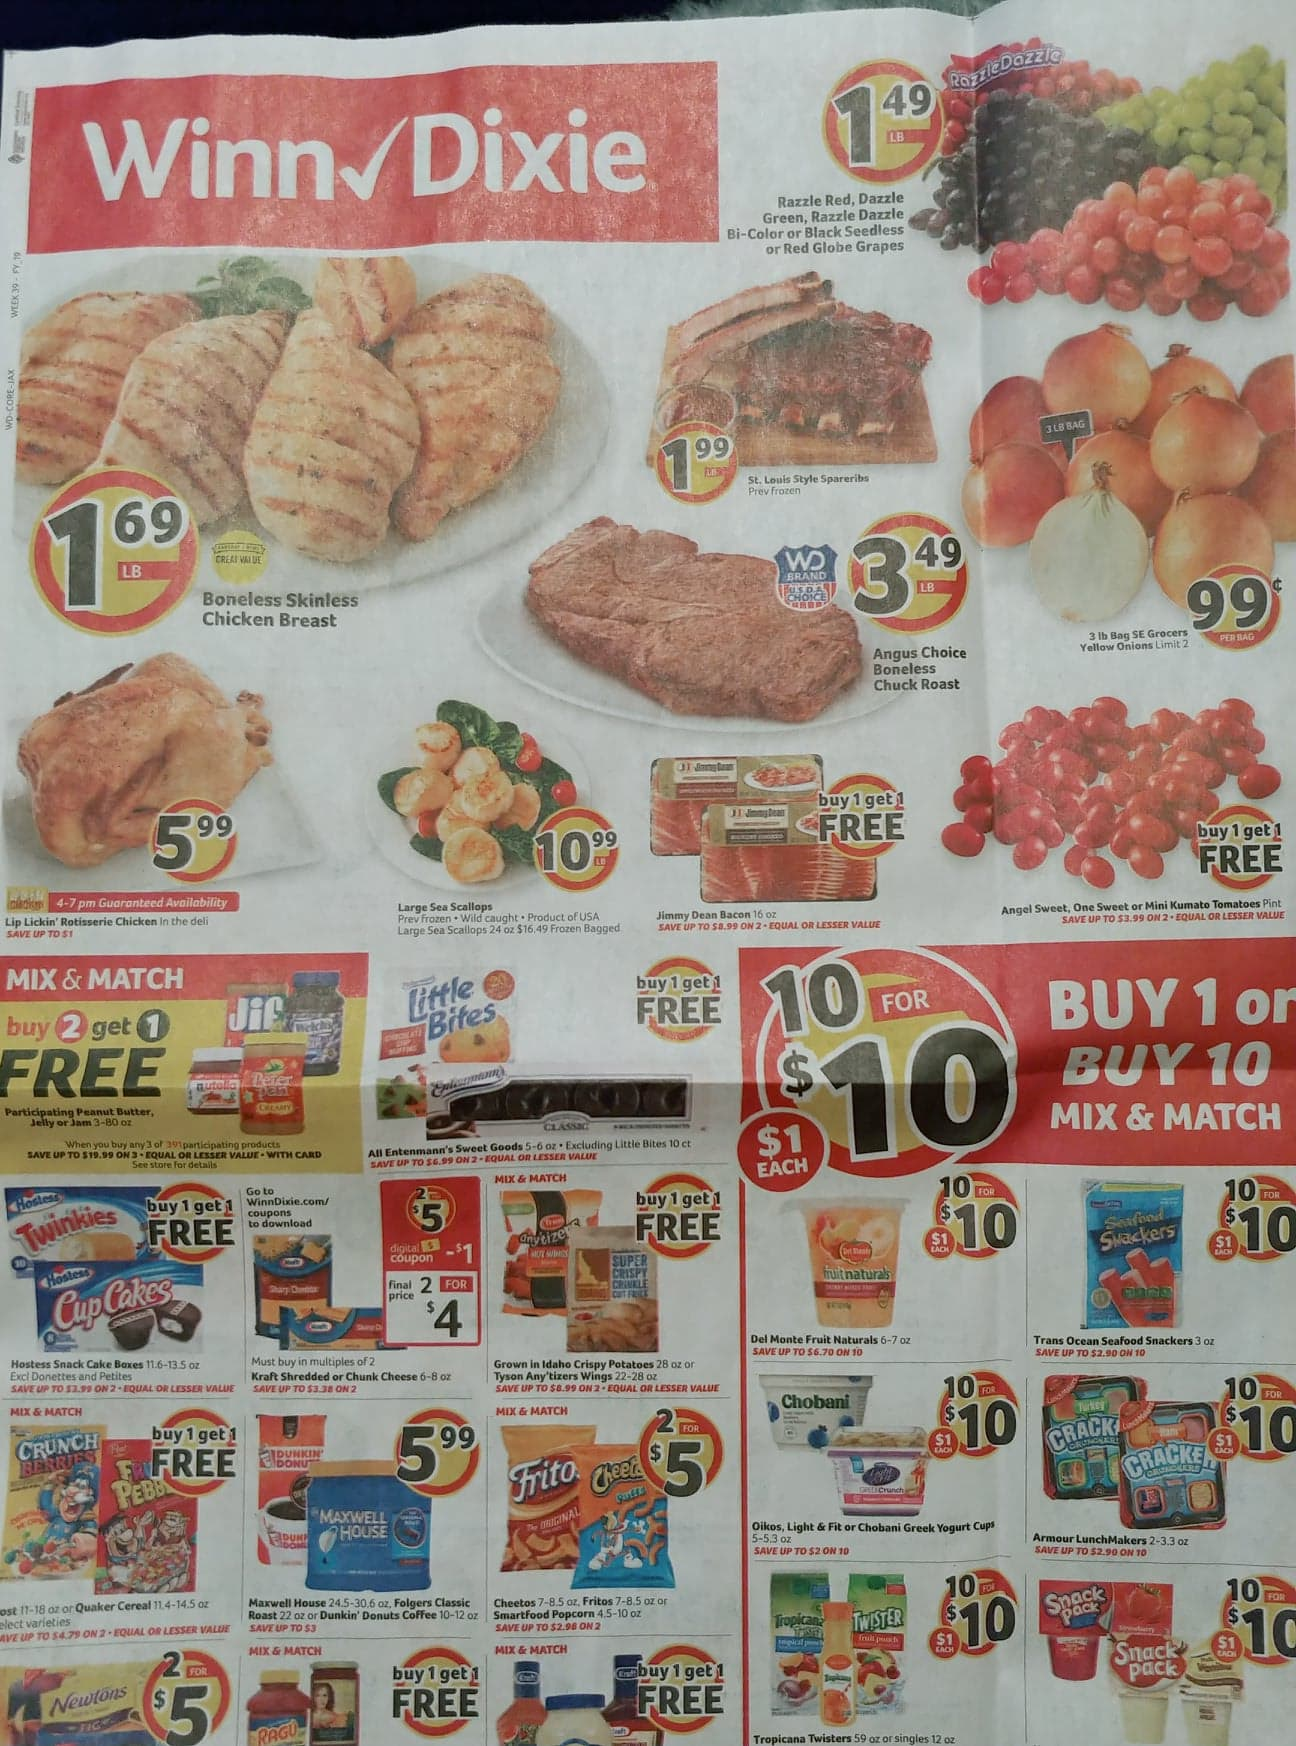 winn dixie weekly ad sep 18 2019